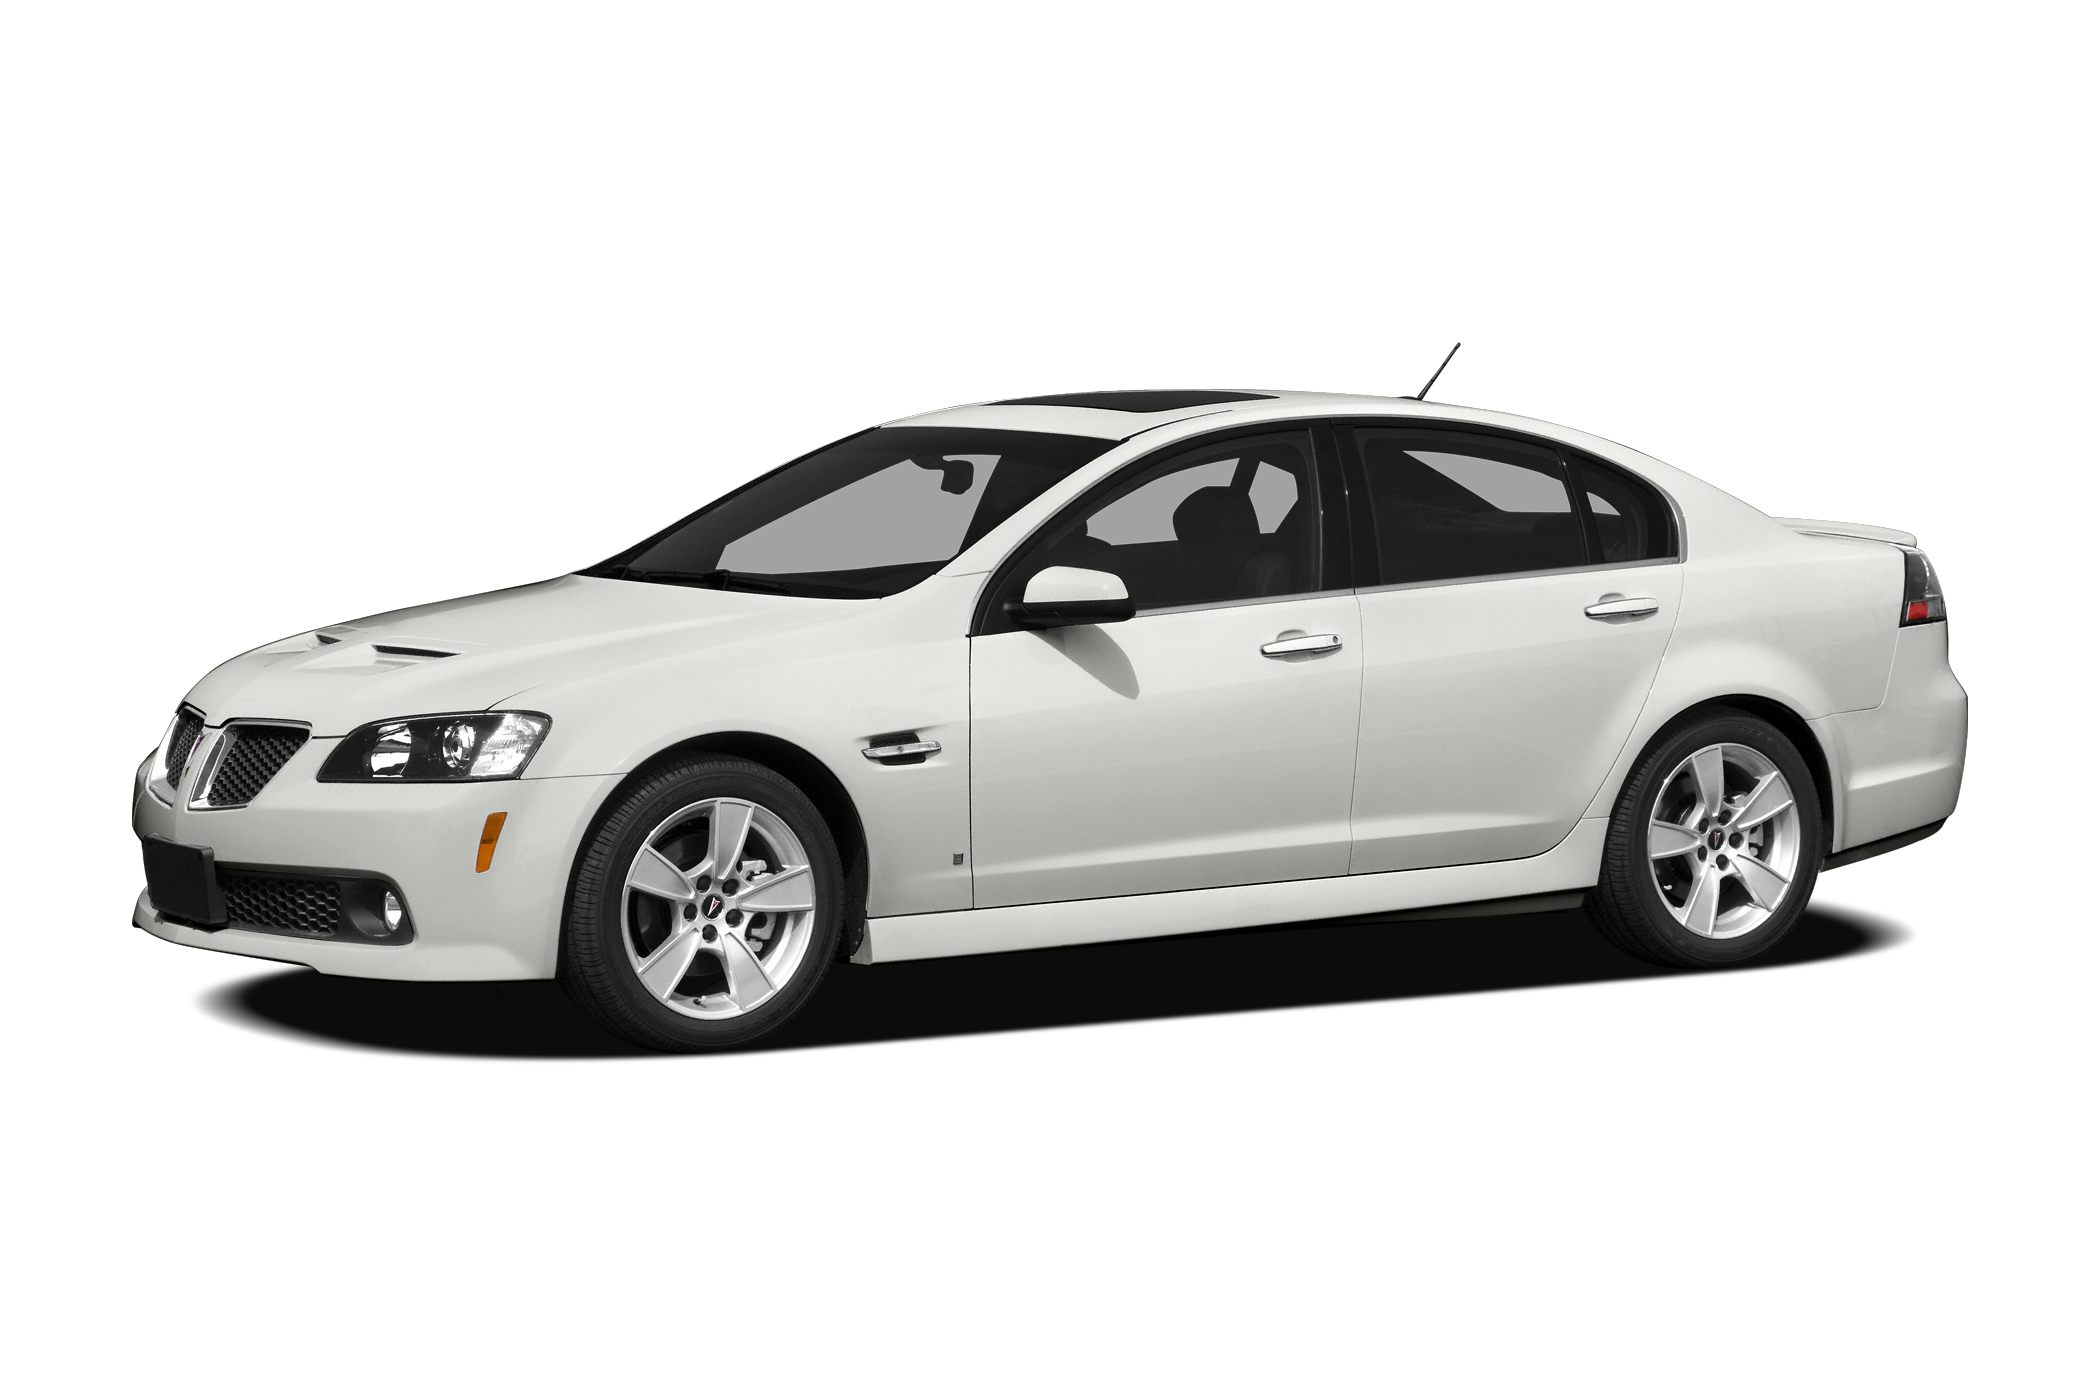 2009 Pontiac G8 GT Sedan for sale in Beaumont for $18,050 with 82,652 miles